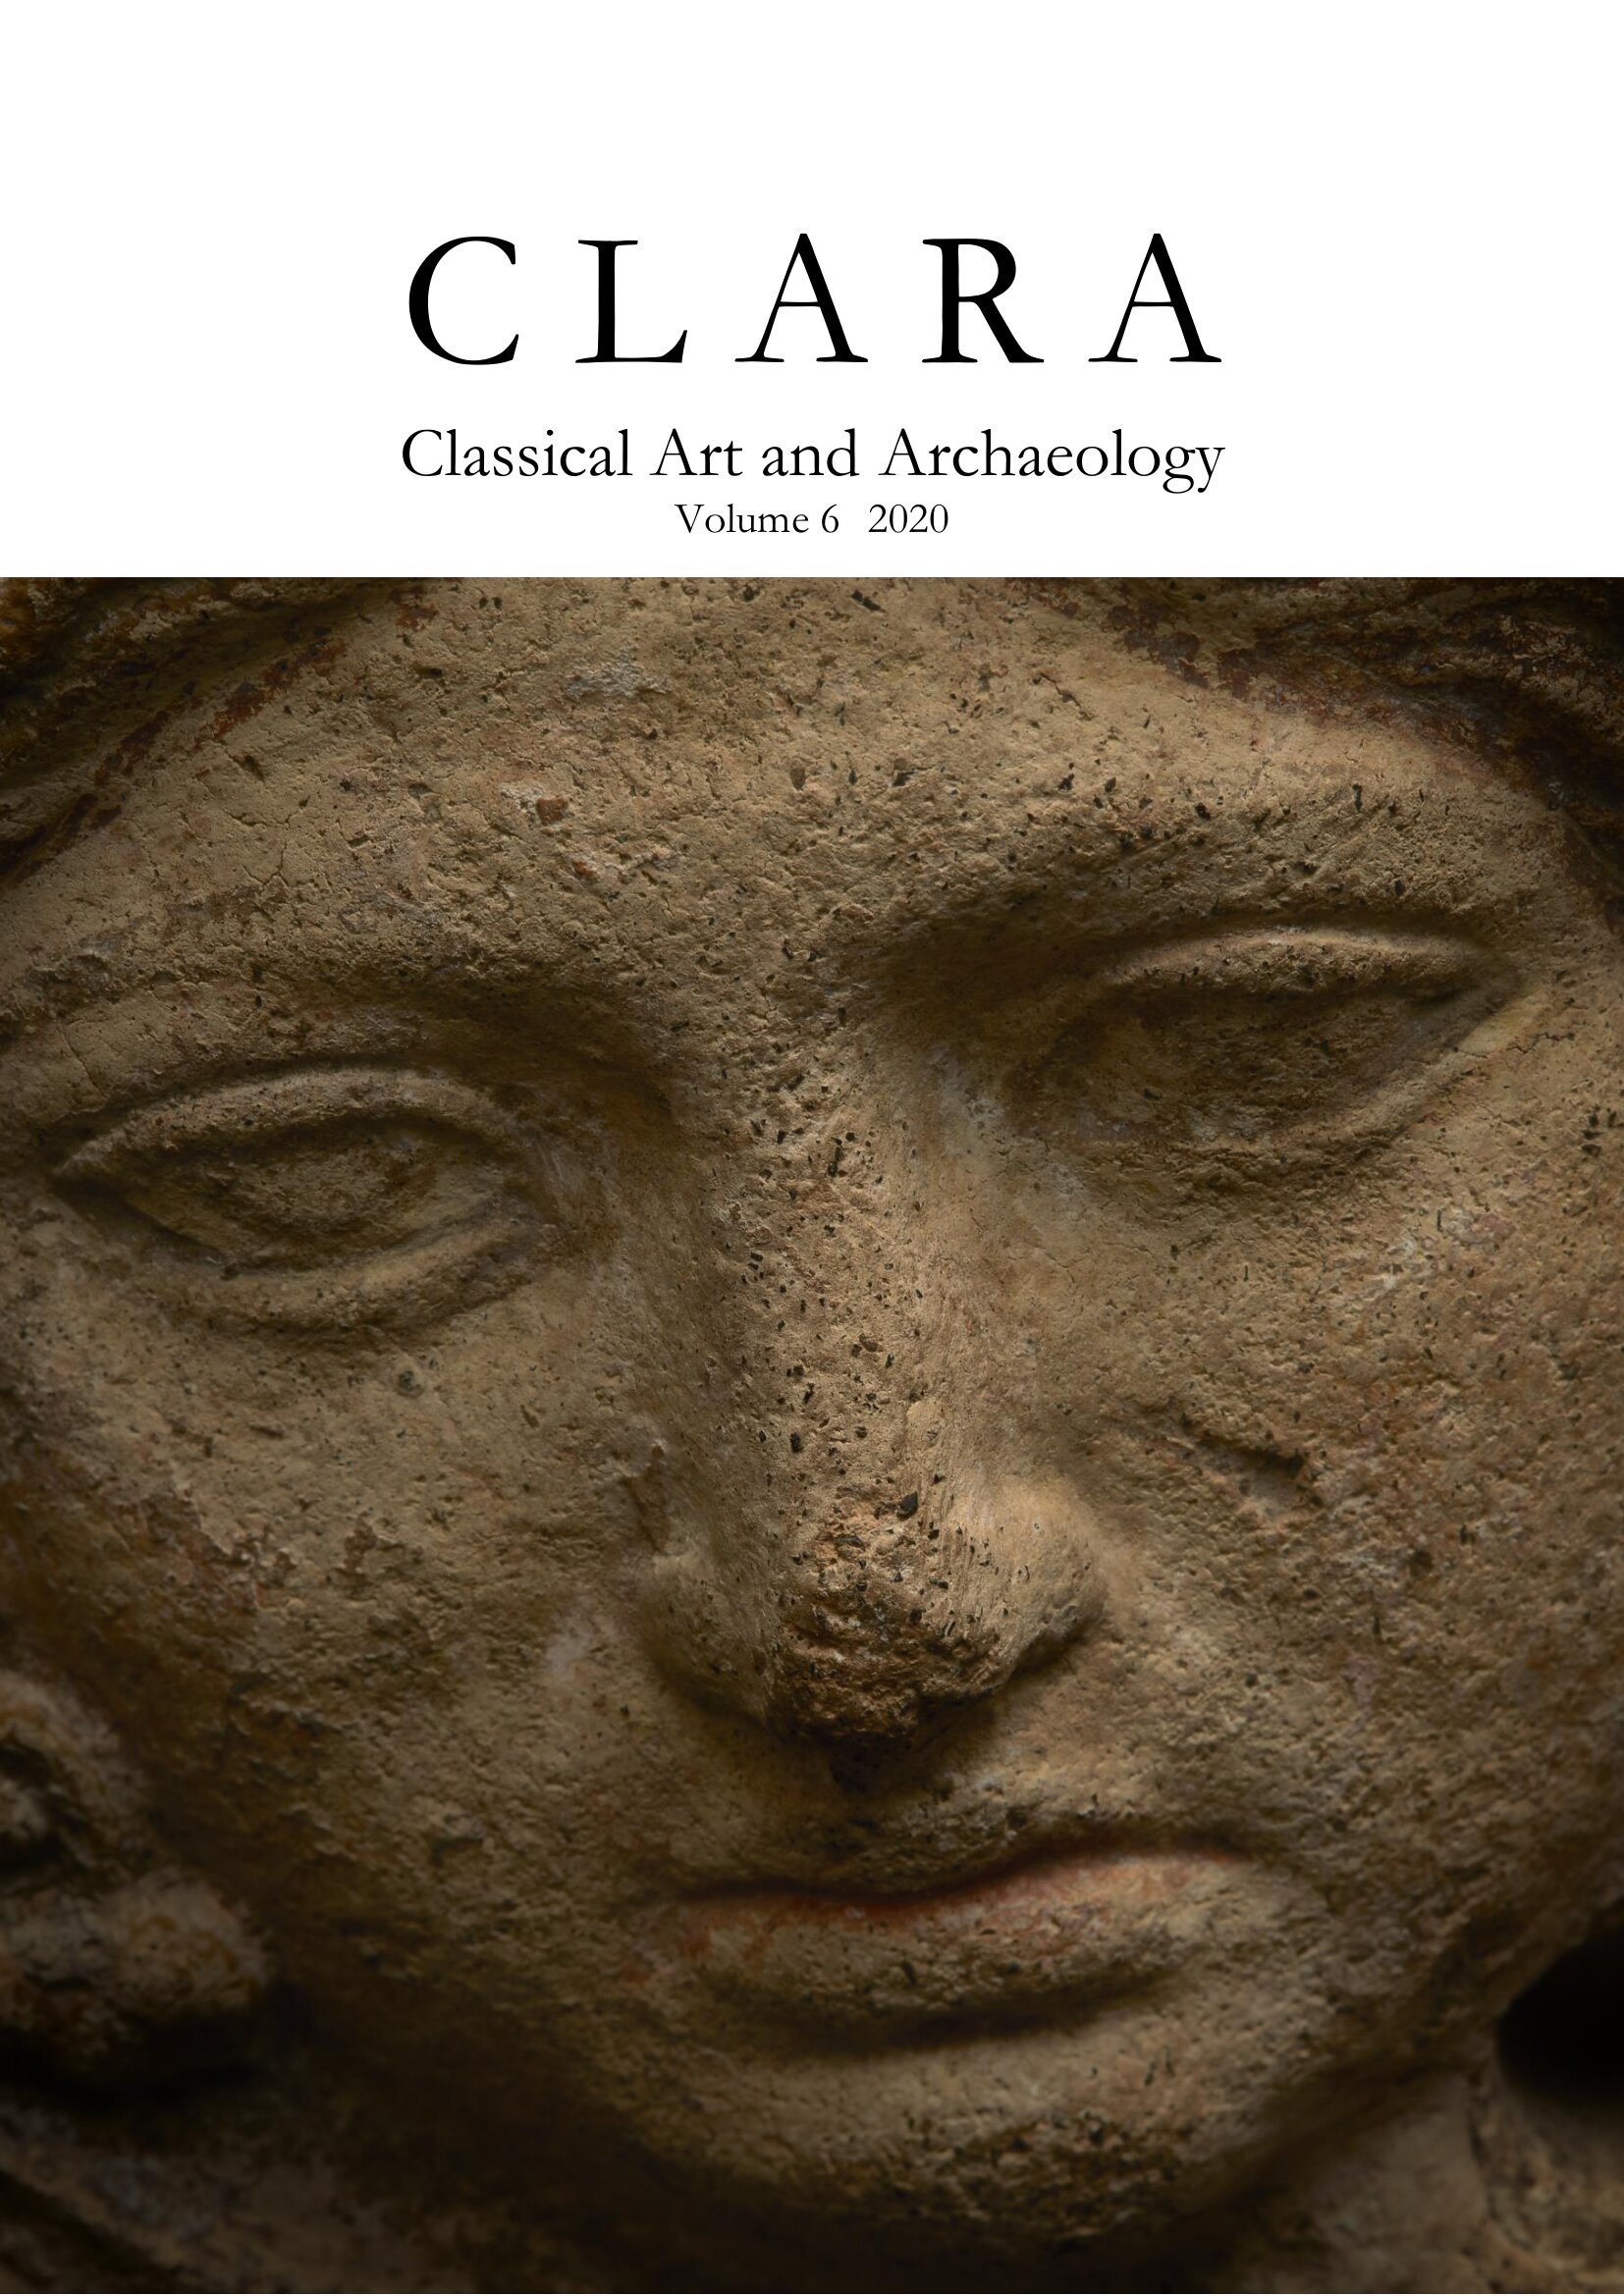 View Vol. 6 (2020): CLARA: Classical Art and Archaeology